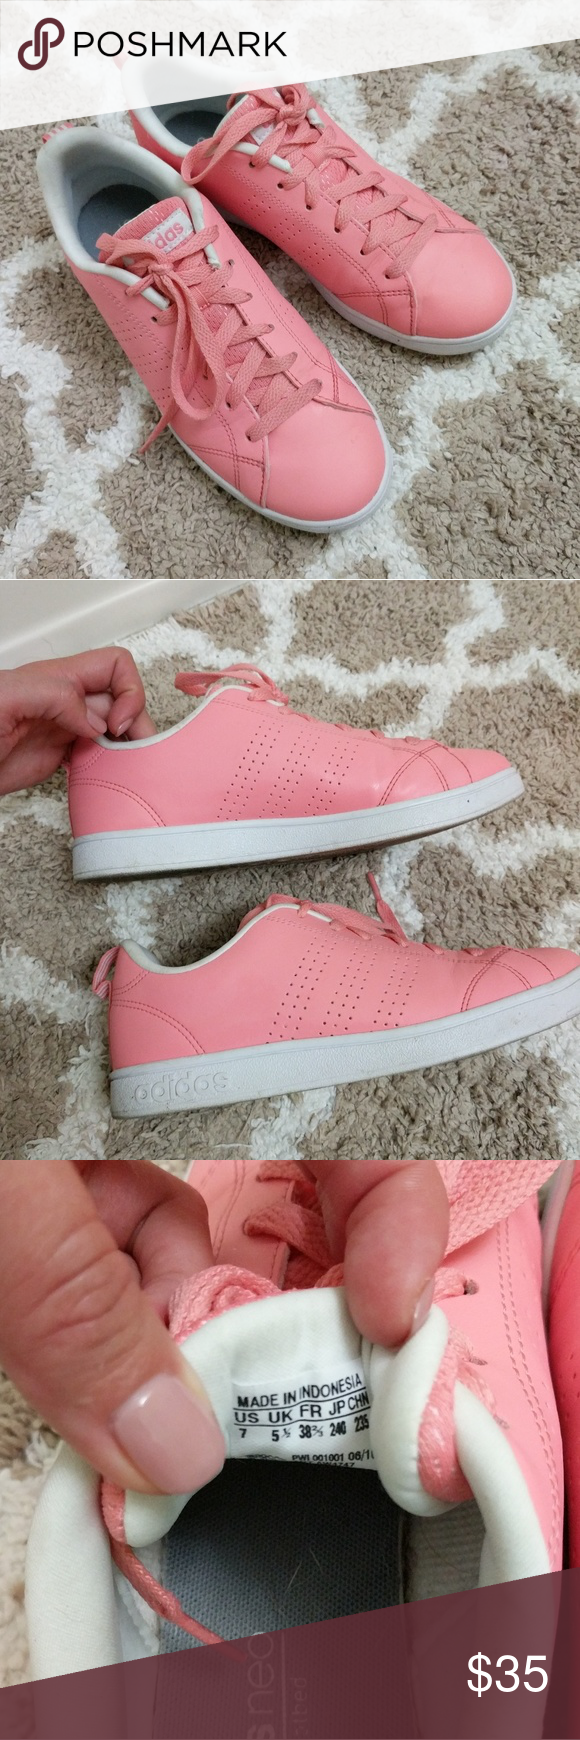 big sale 361a0 2ebc1 Adidas Neo sneakers Adidas Neo Ray Pink sneakers - bright pink - size 7 -  comfort